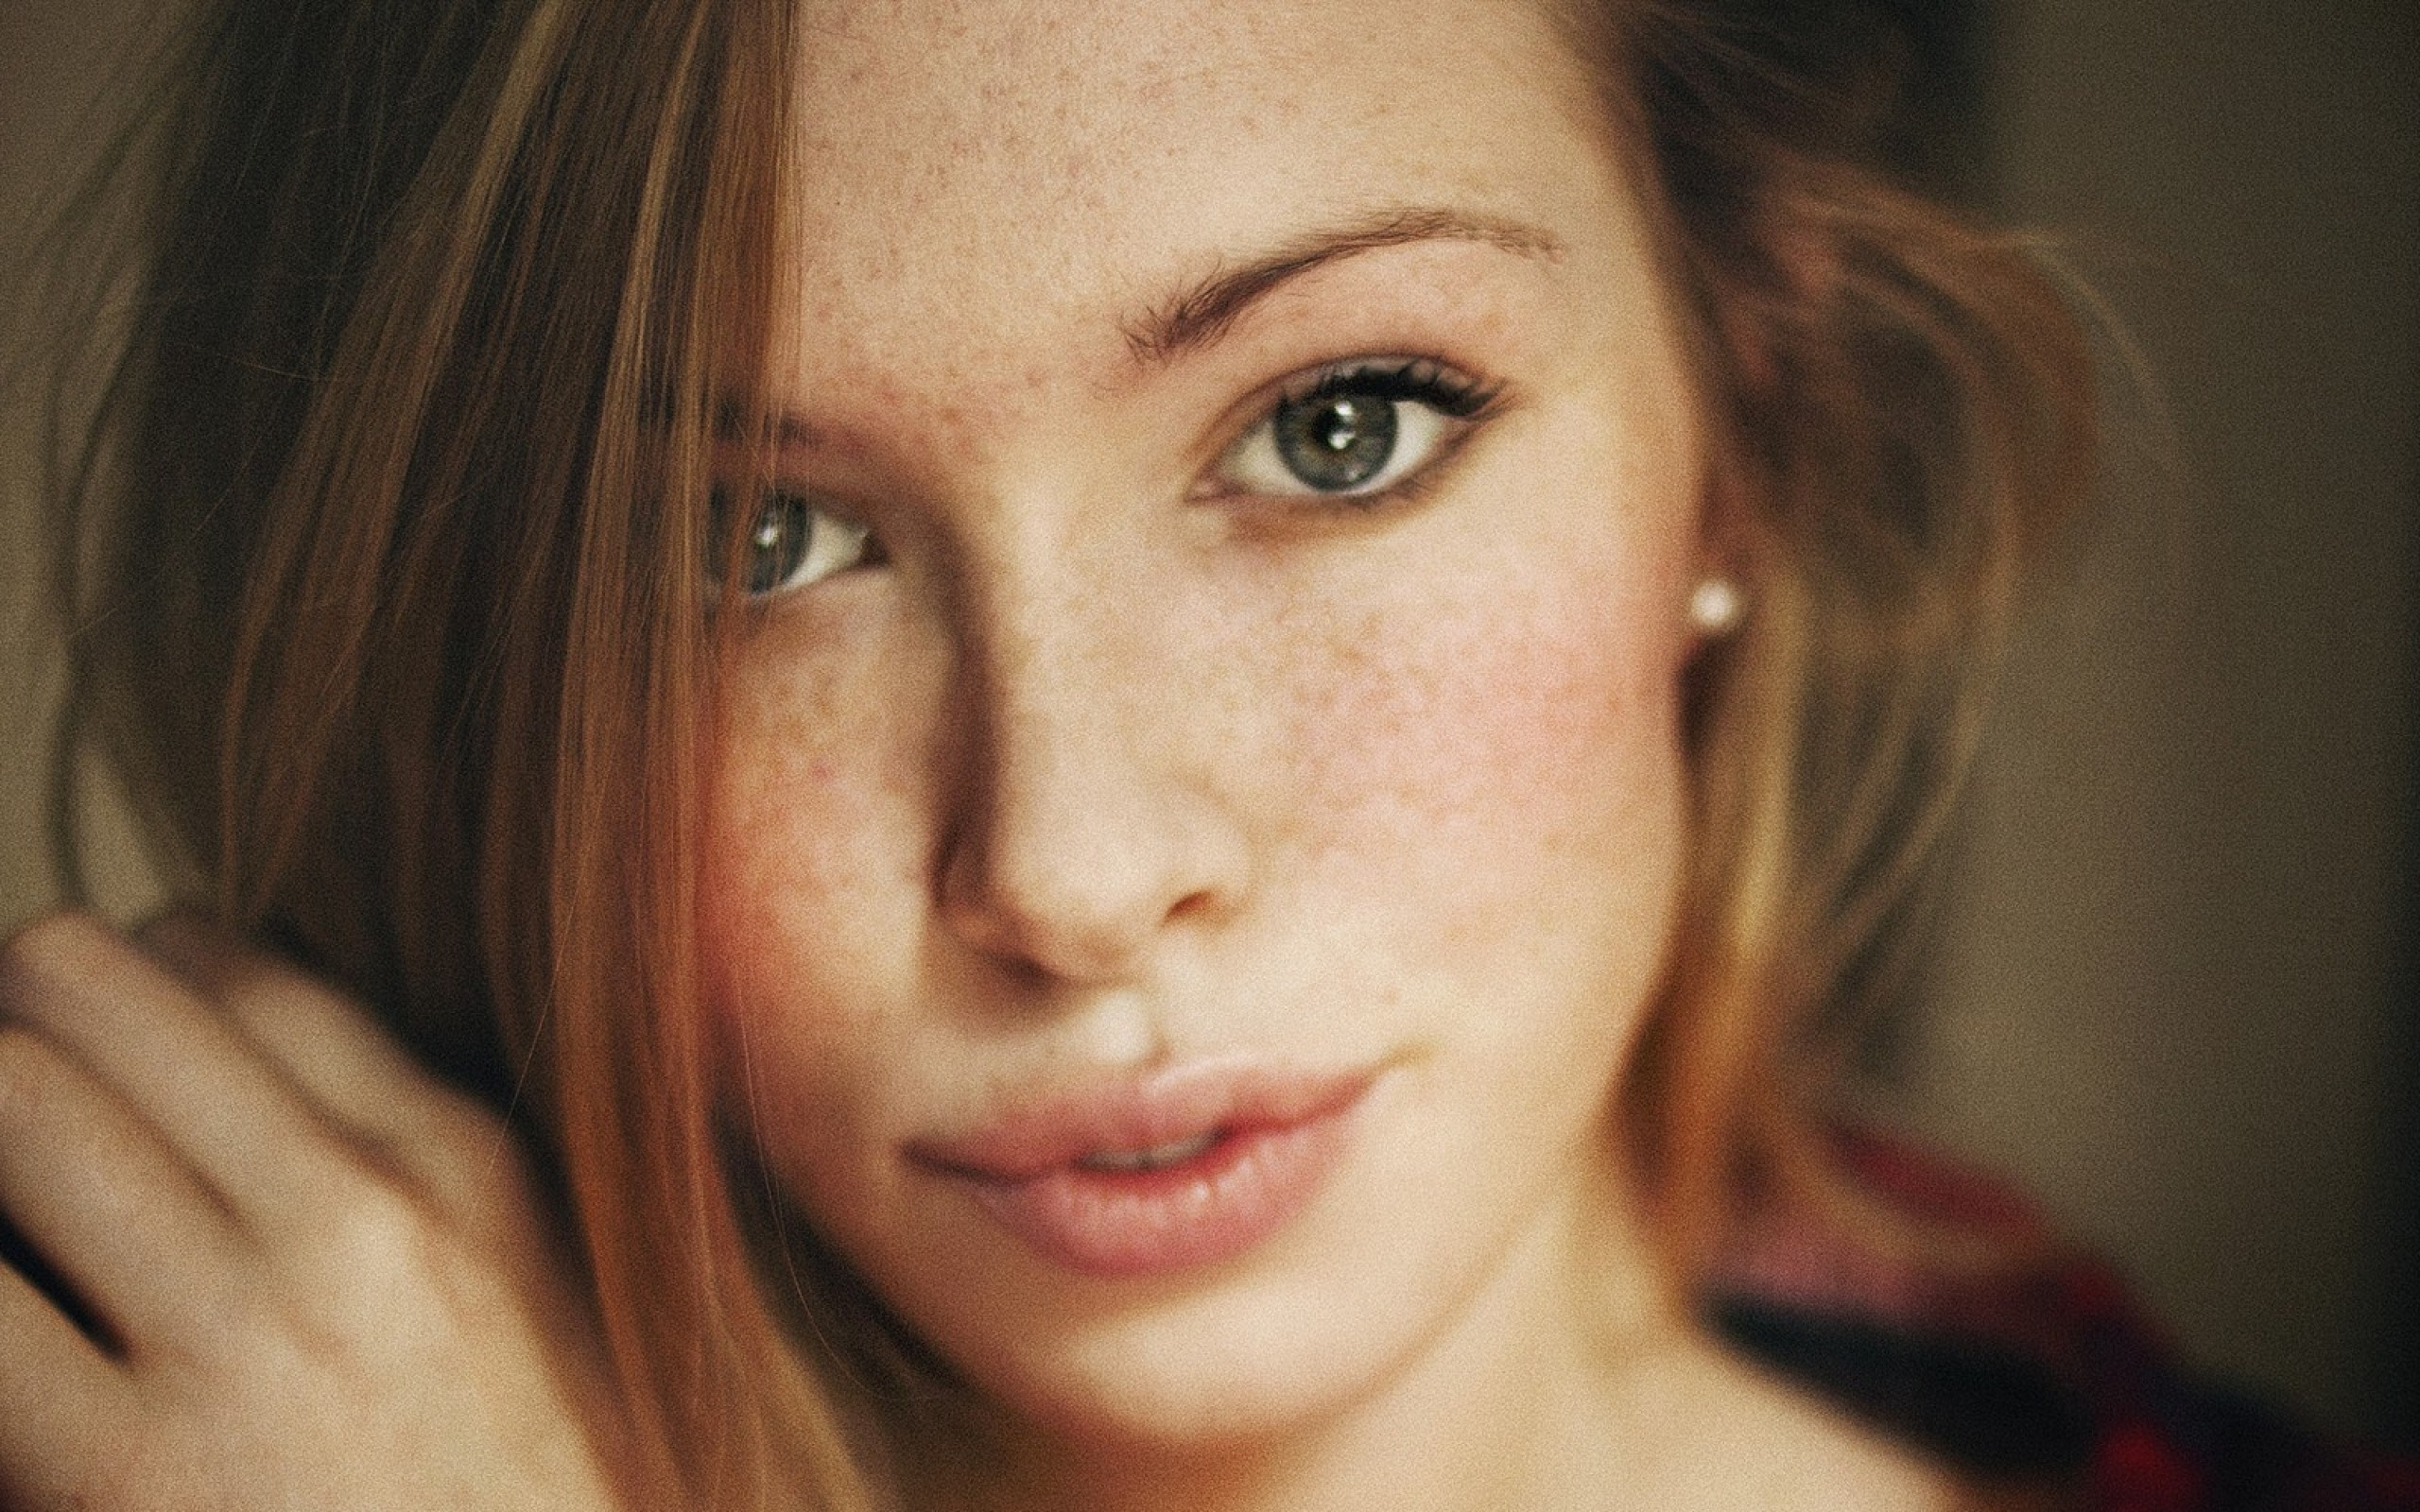 Portrait Freckles Girl Photo